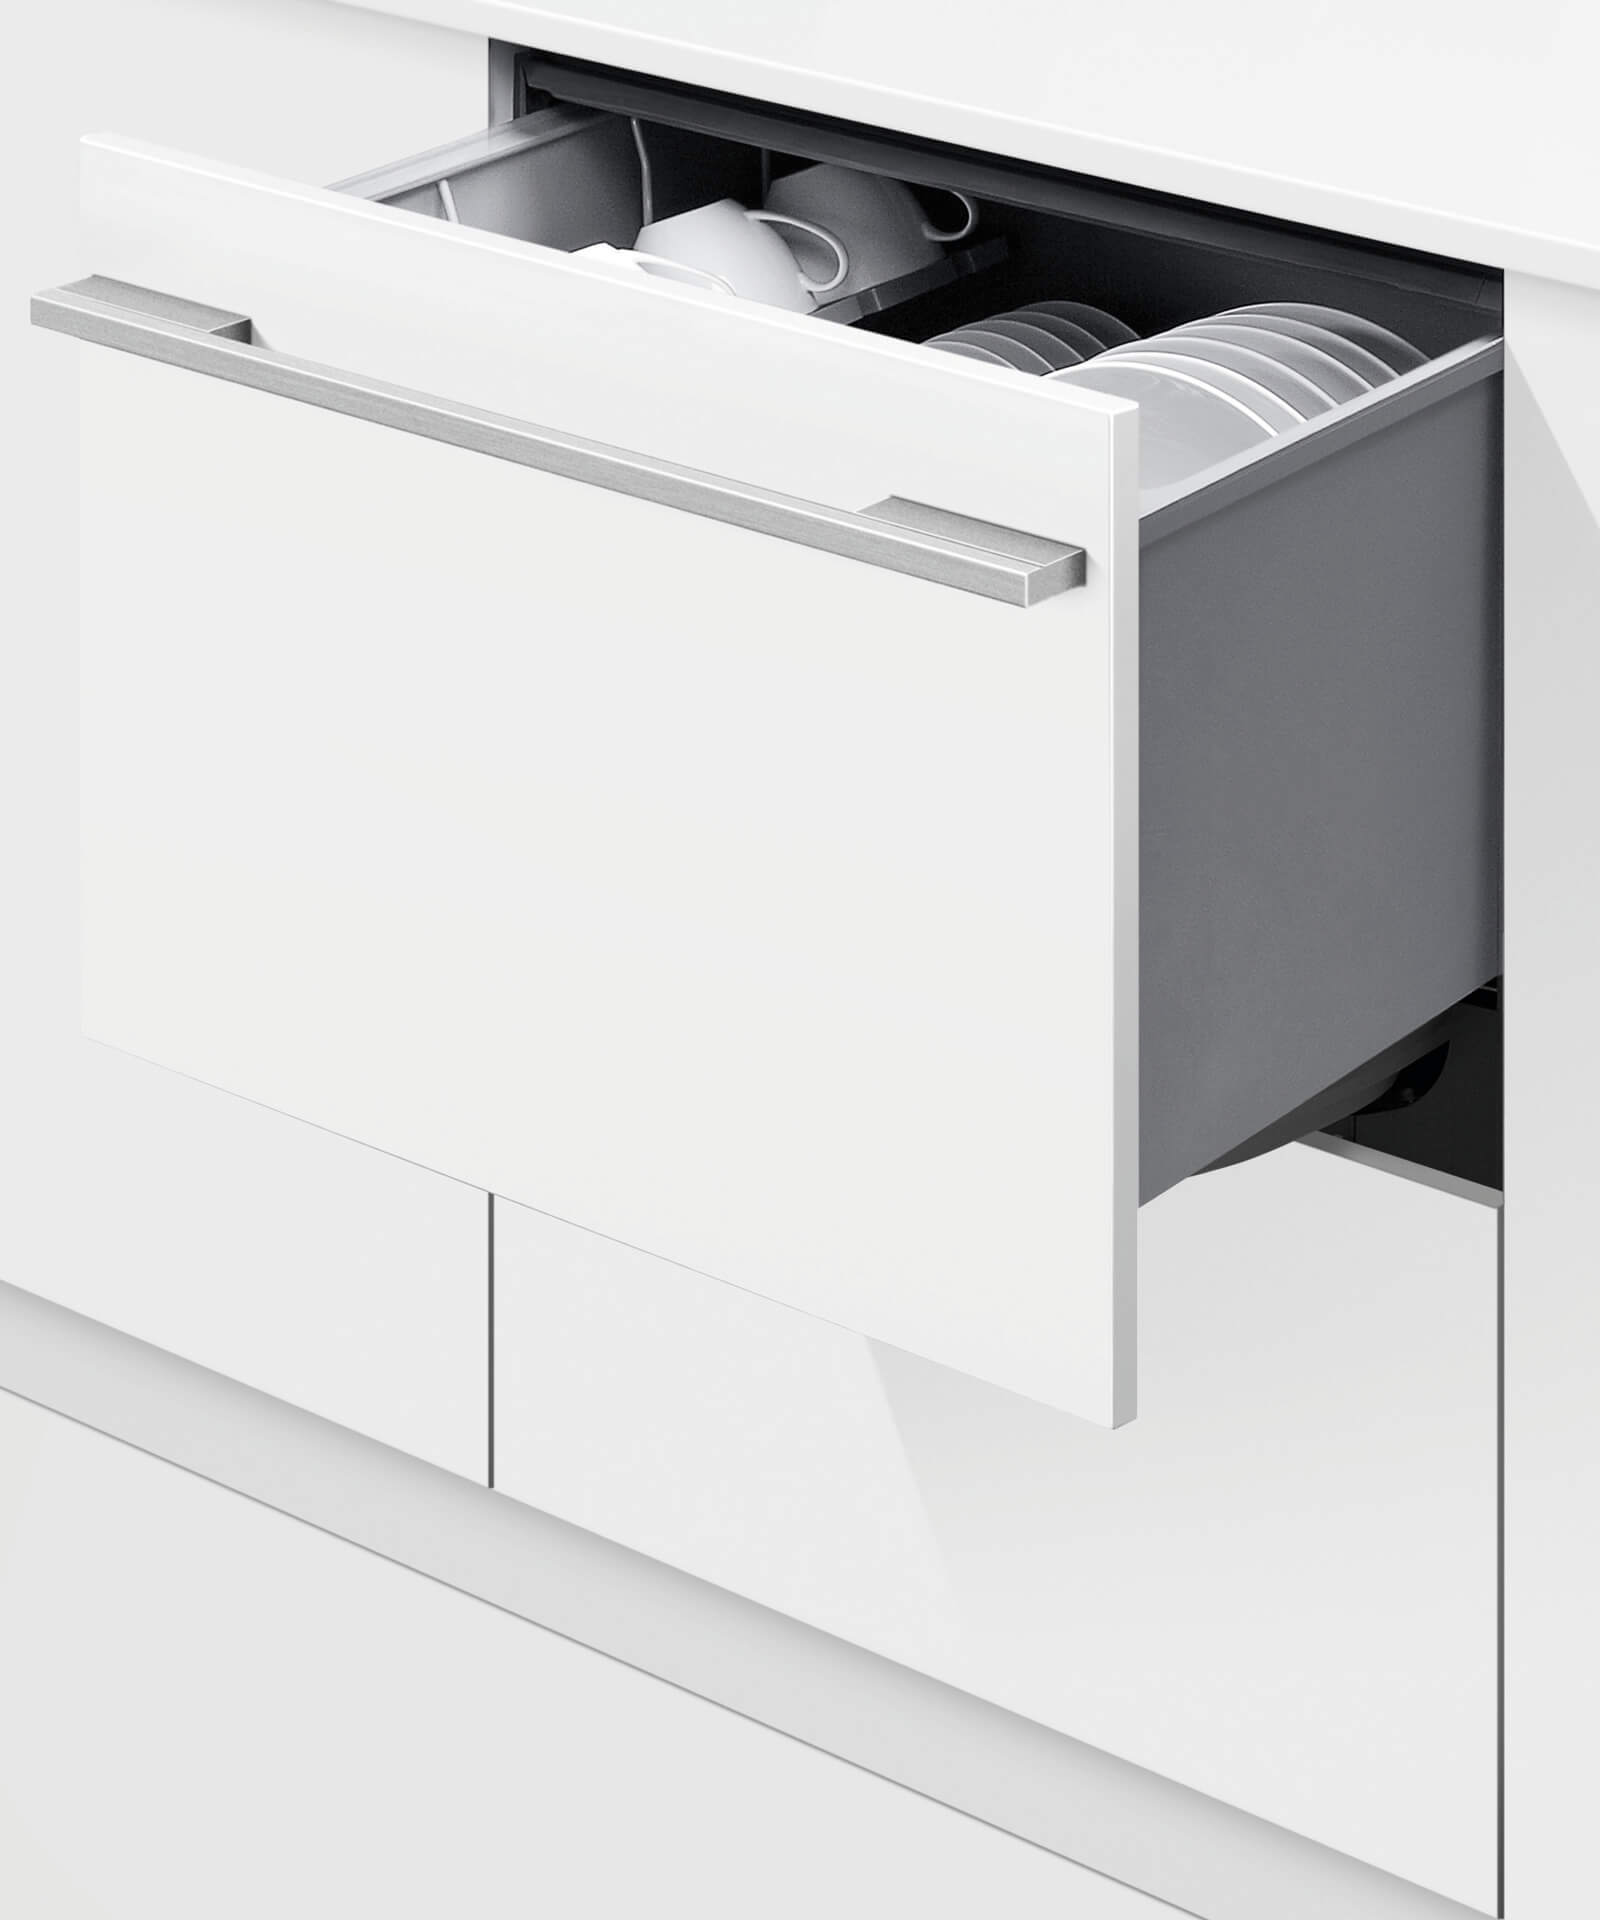 designer single dishdrawer dual specials configuration drawer dishwasher home sale surplus on fisher at in drawers load dishdrawers paykel